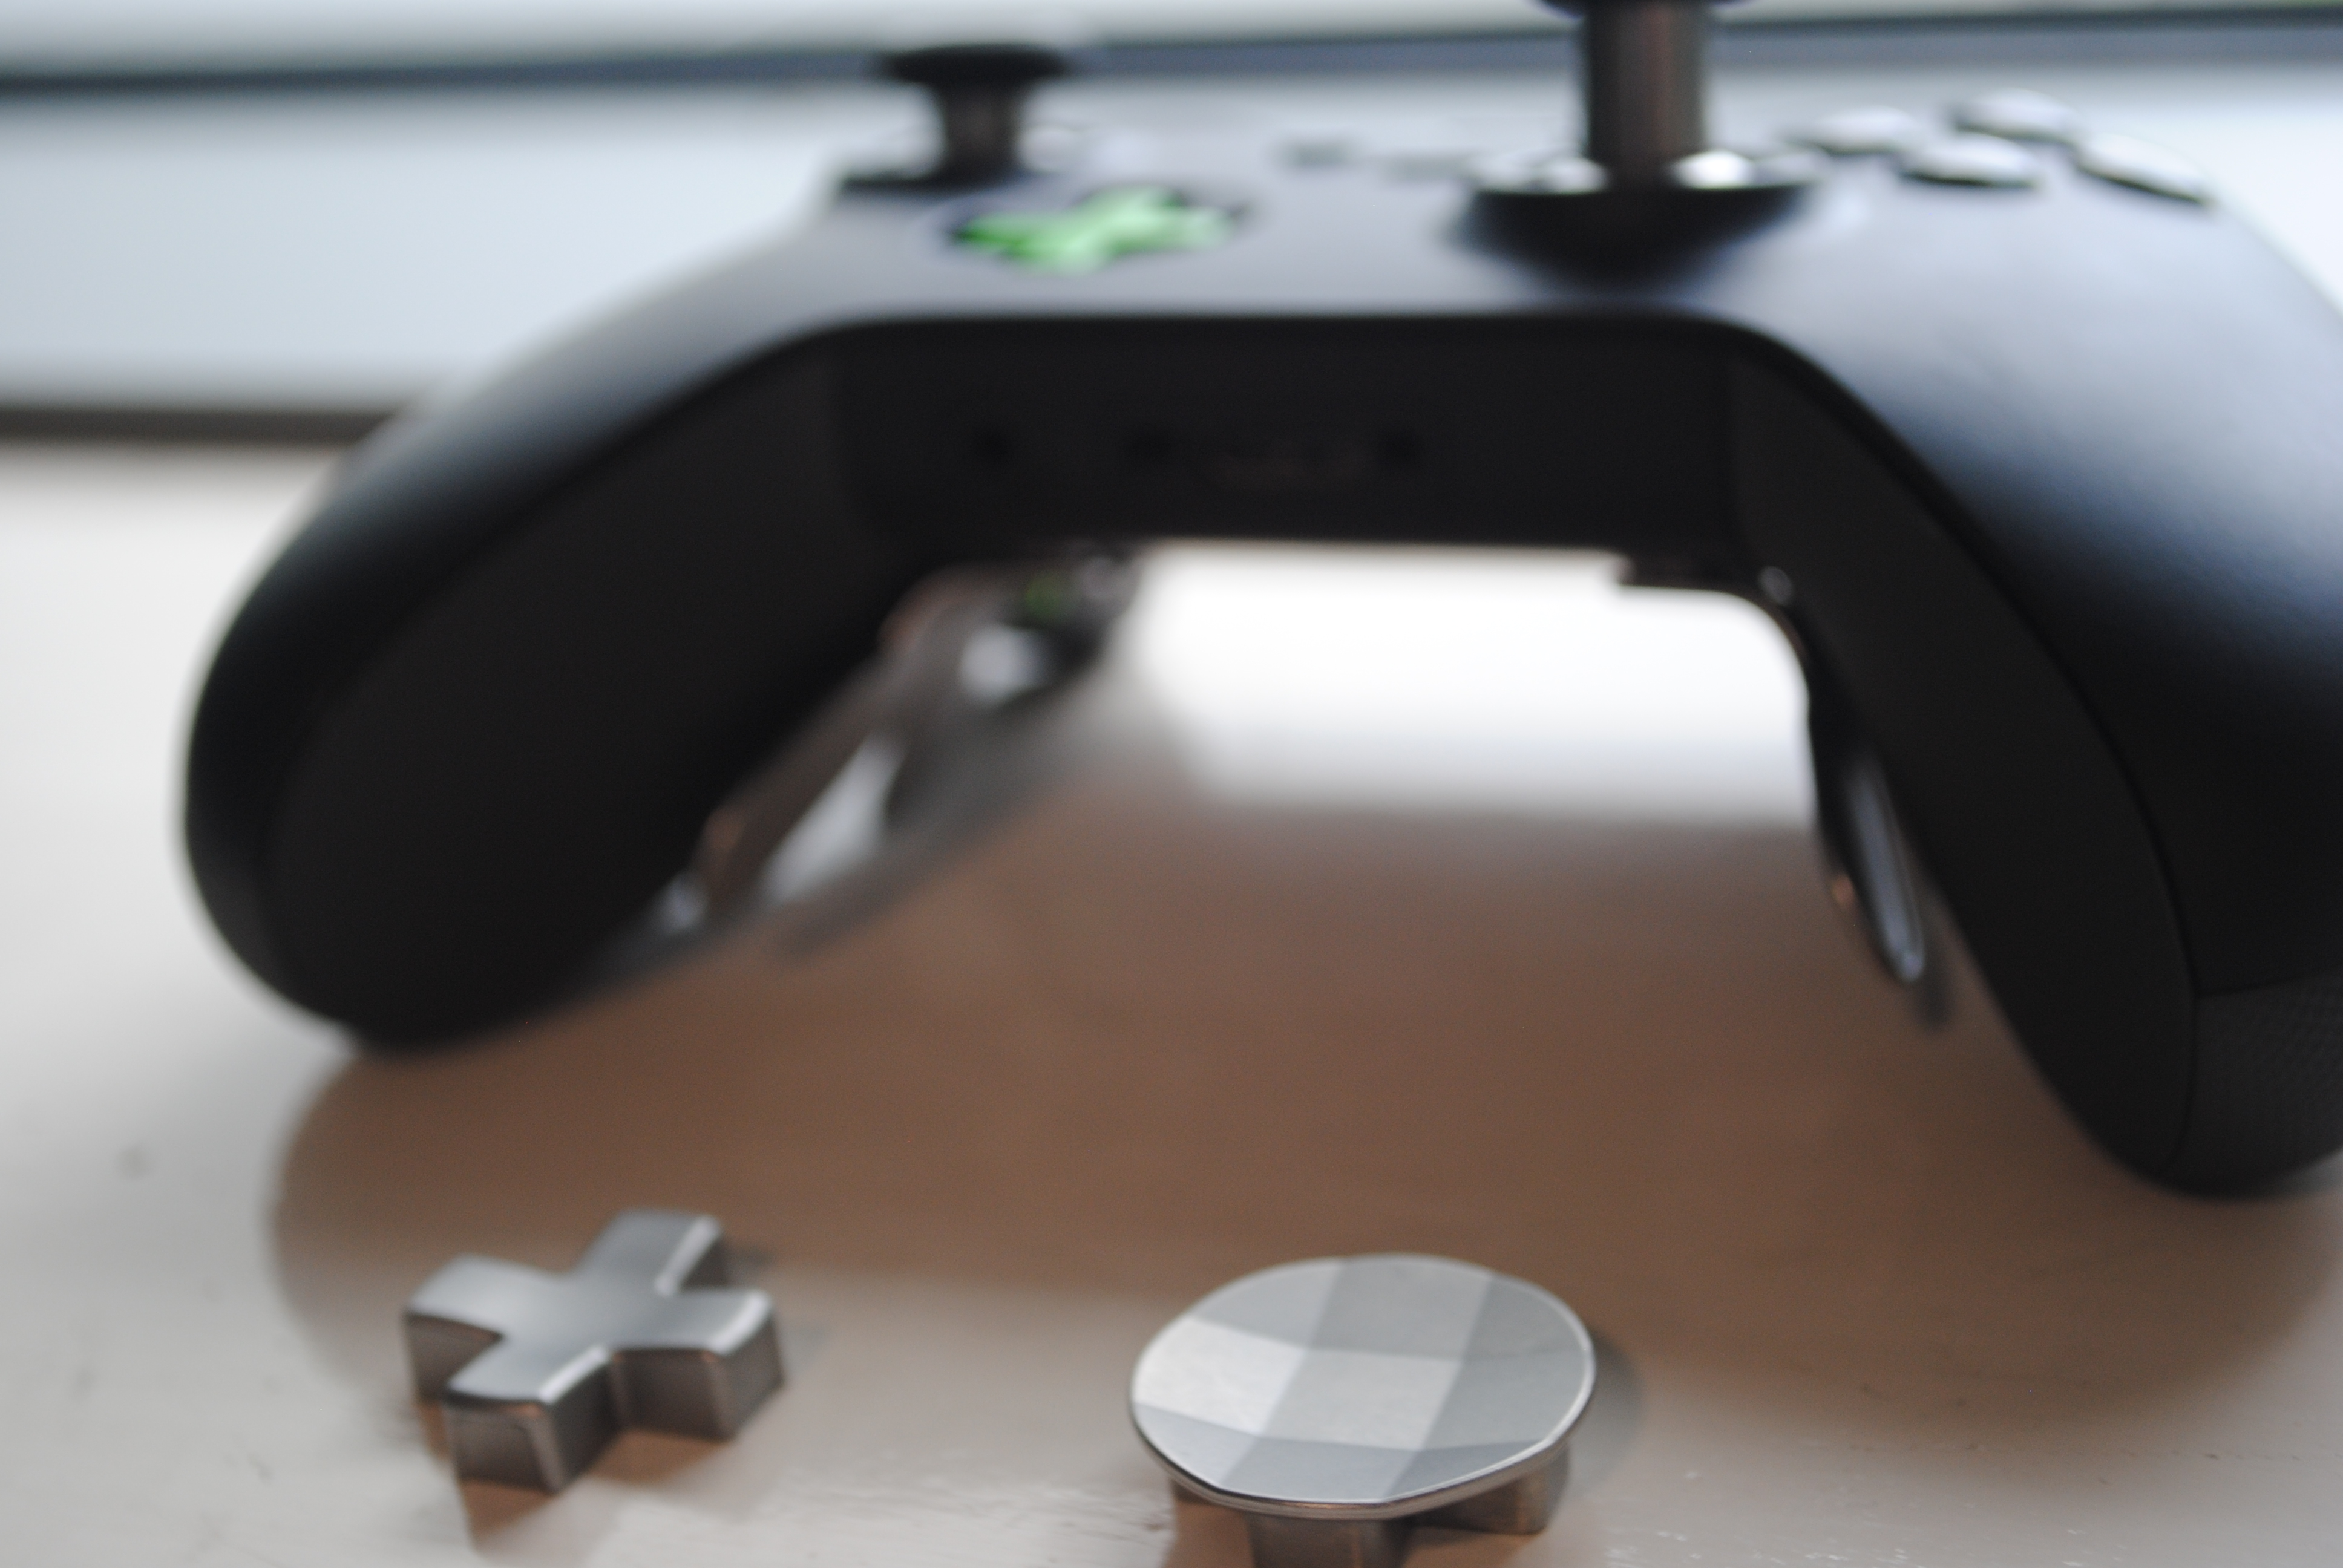 Xbox One ELITE controller: What's different? – TechBytez